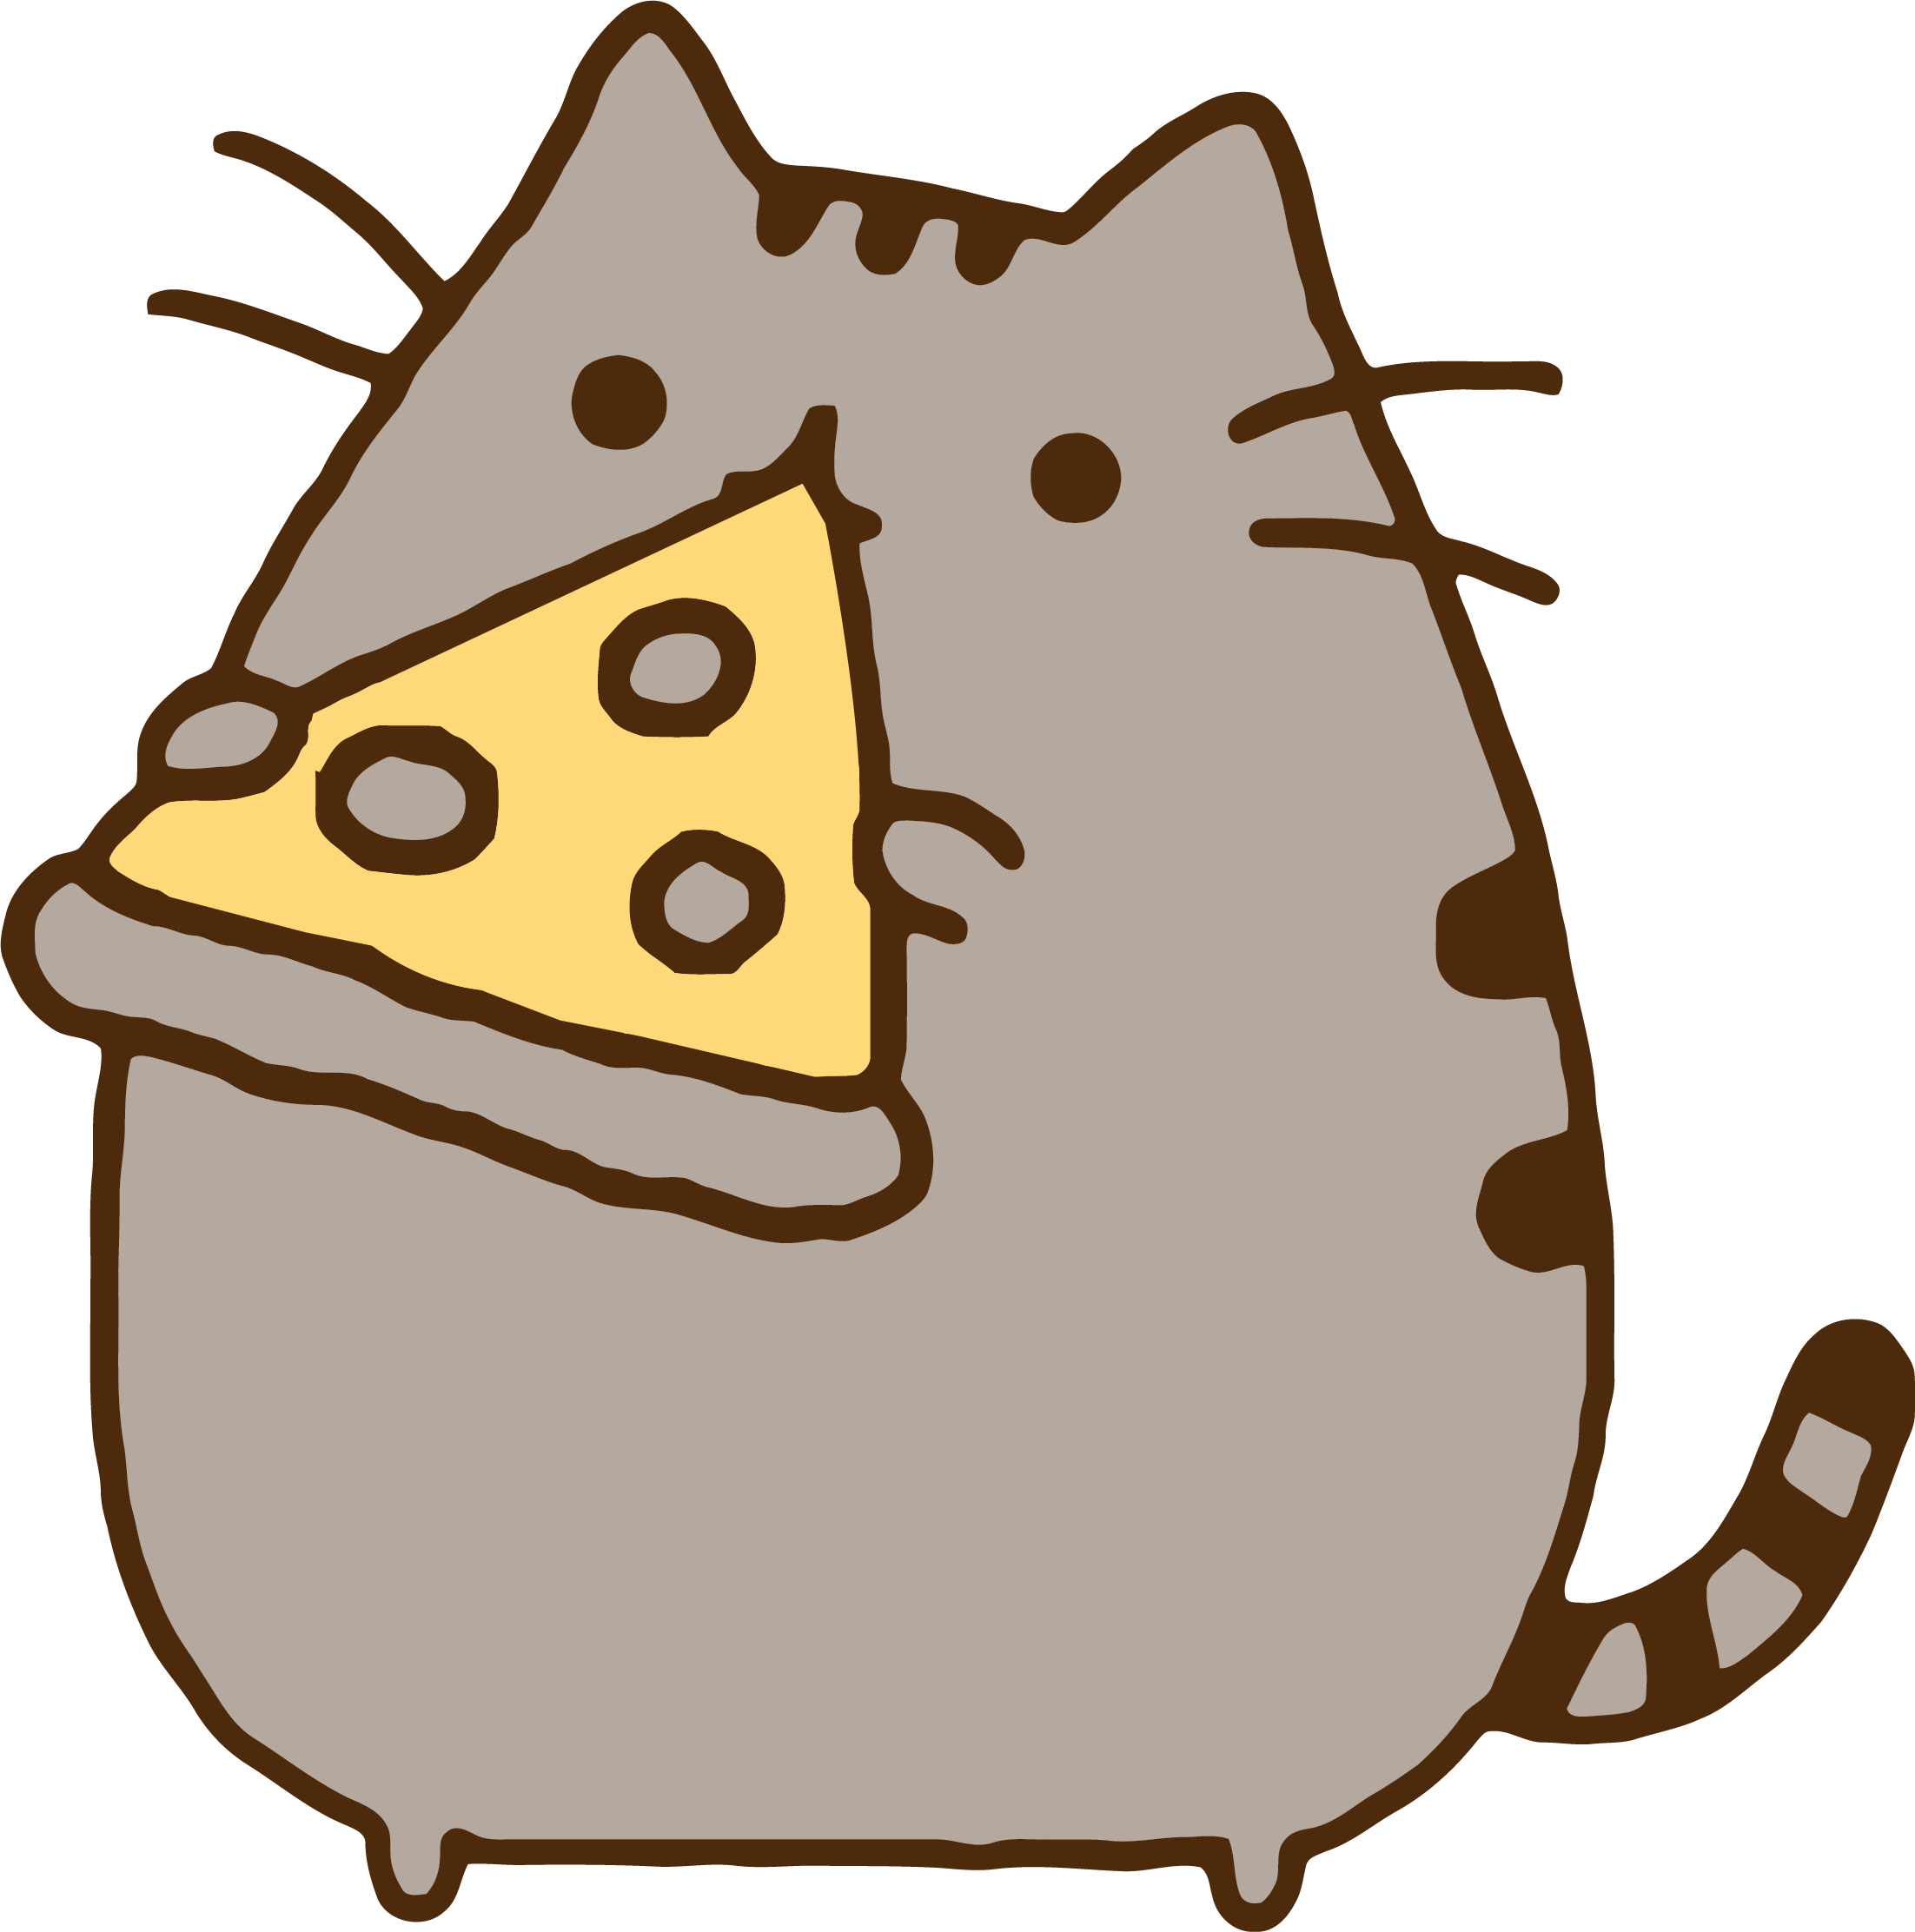 Motorcycle clipart pizza. Pusheen eating cat cats